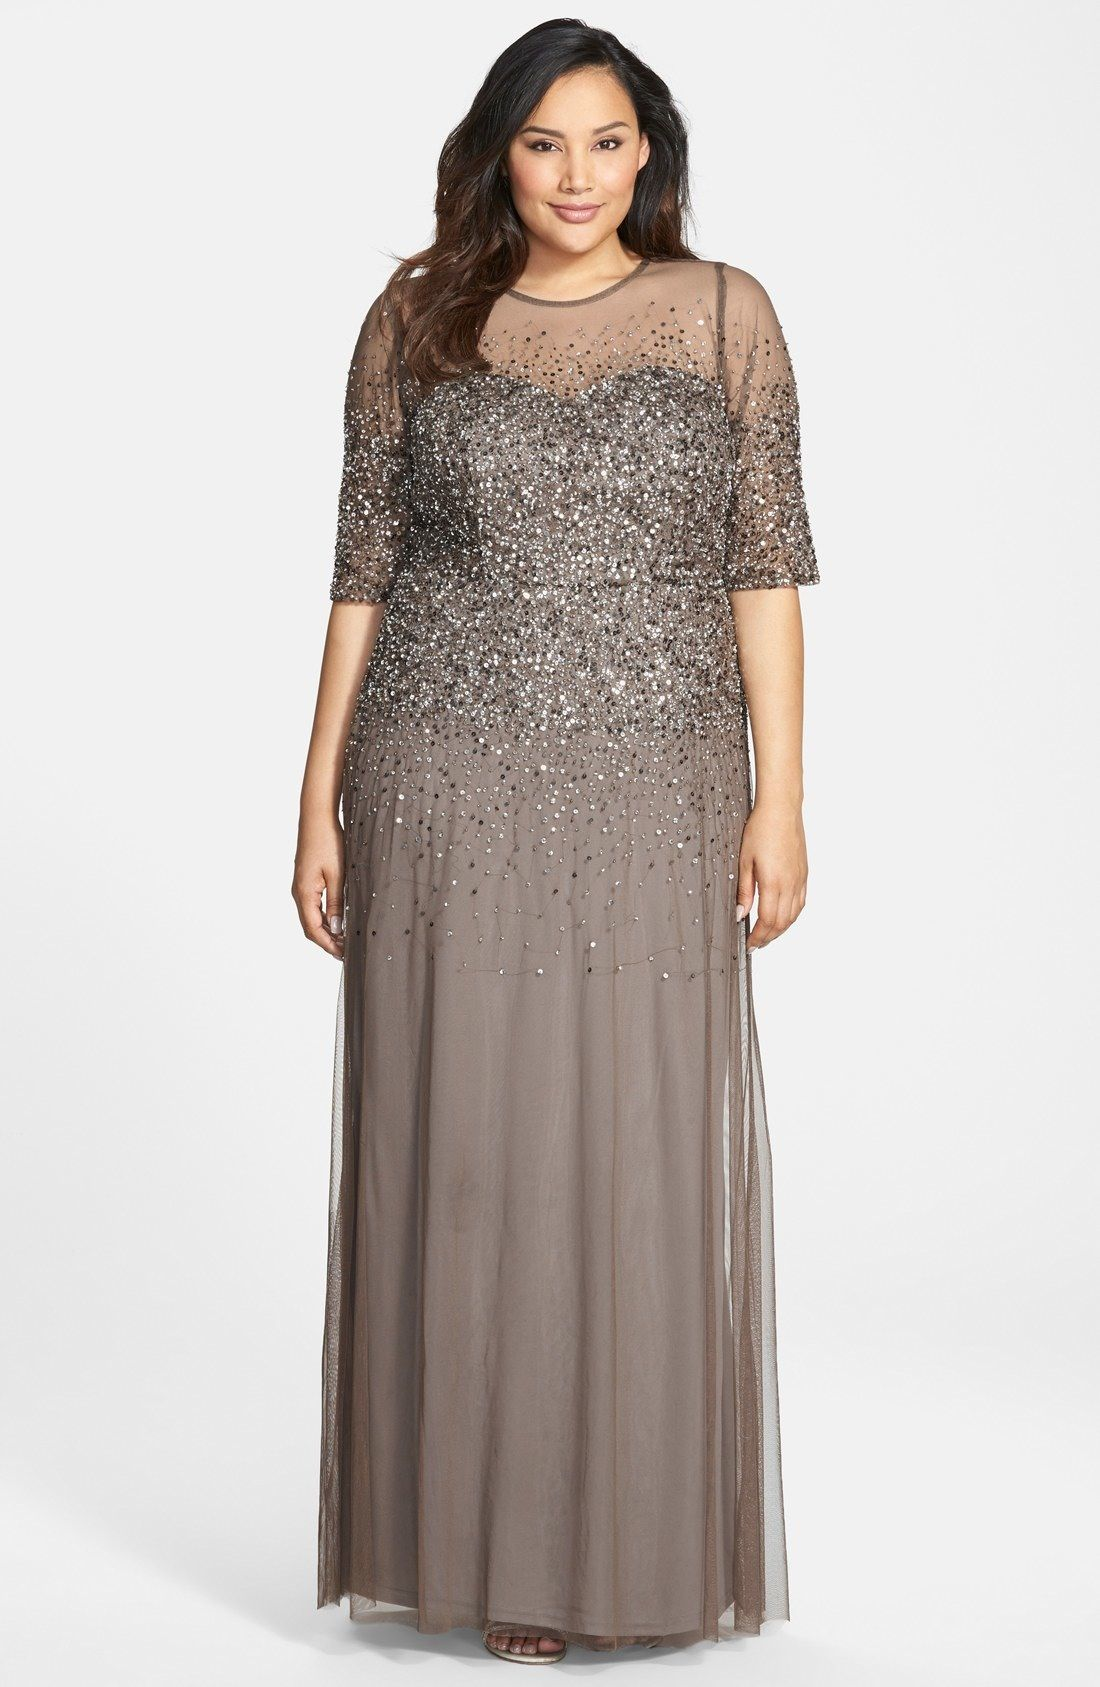 1e9daa917db Adrianna Papell Beaded Illusion Gown (Plus Size) available at  Nordstrom